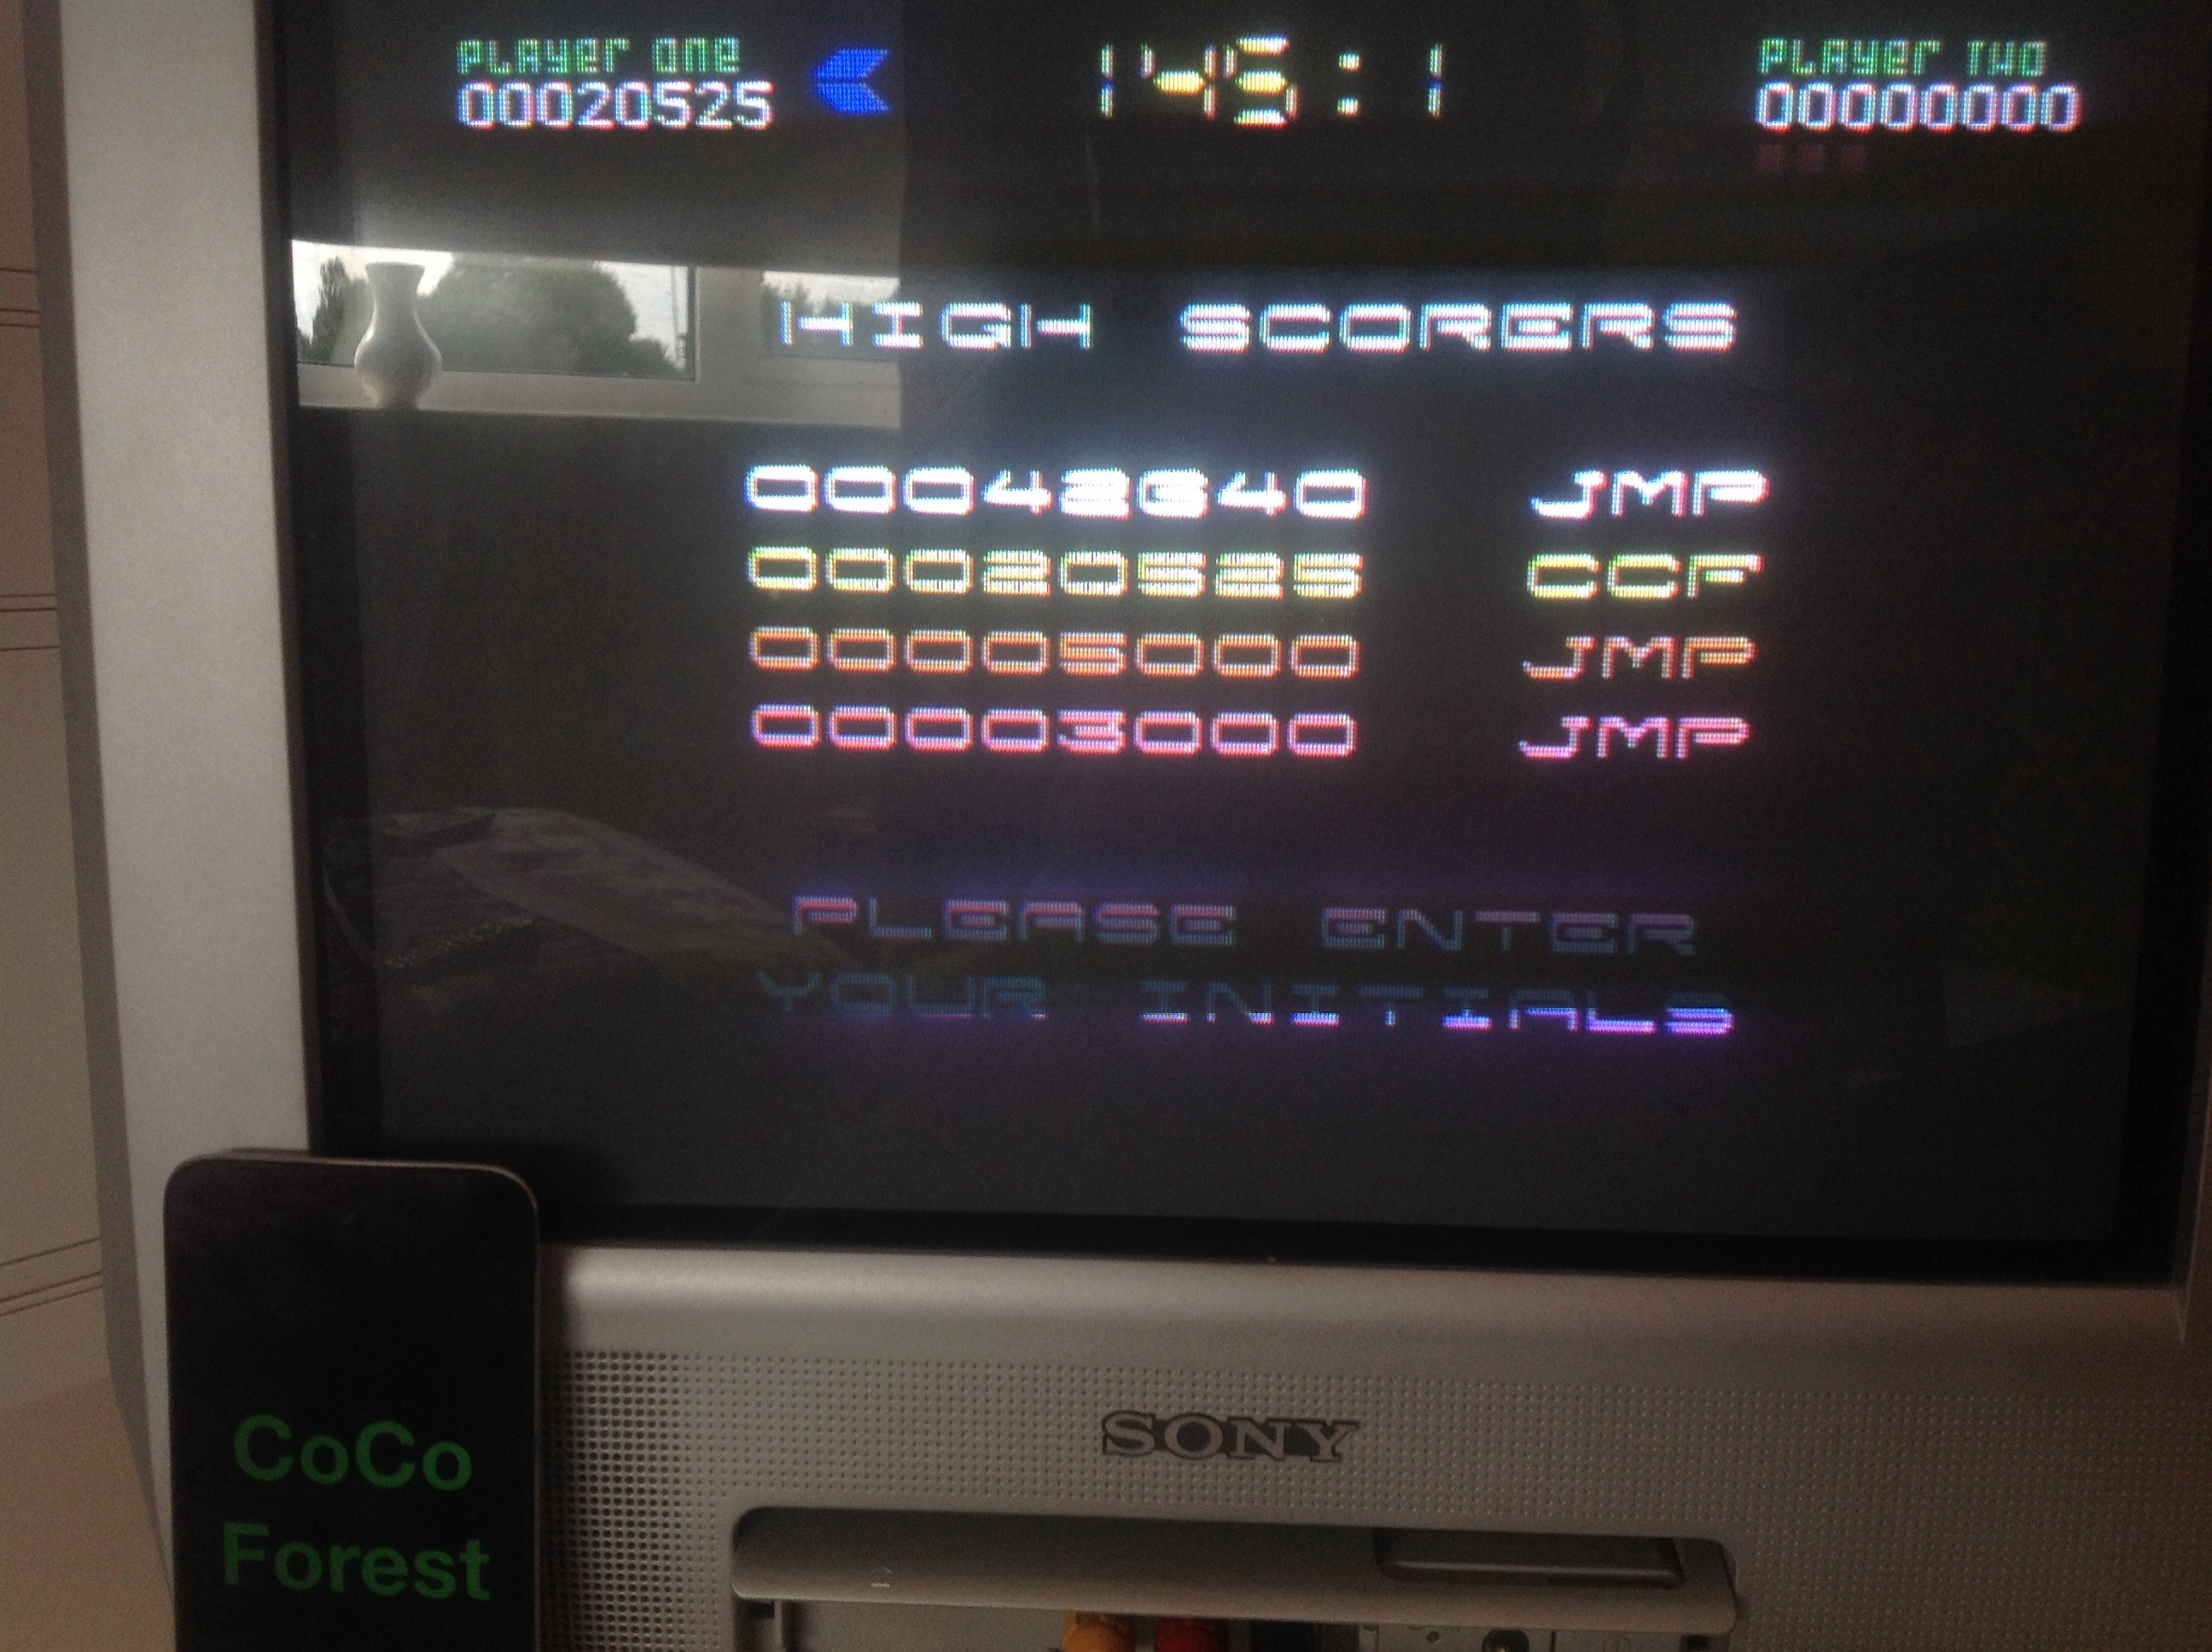 CoCoForest: Nebulus (Commodore 64) 20,525 points on 2014-08-07 10:01:34